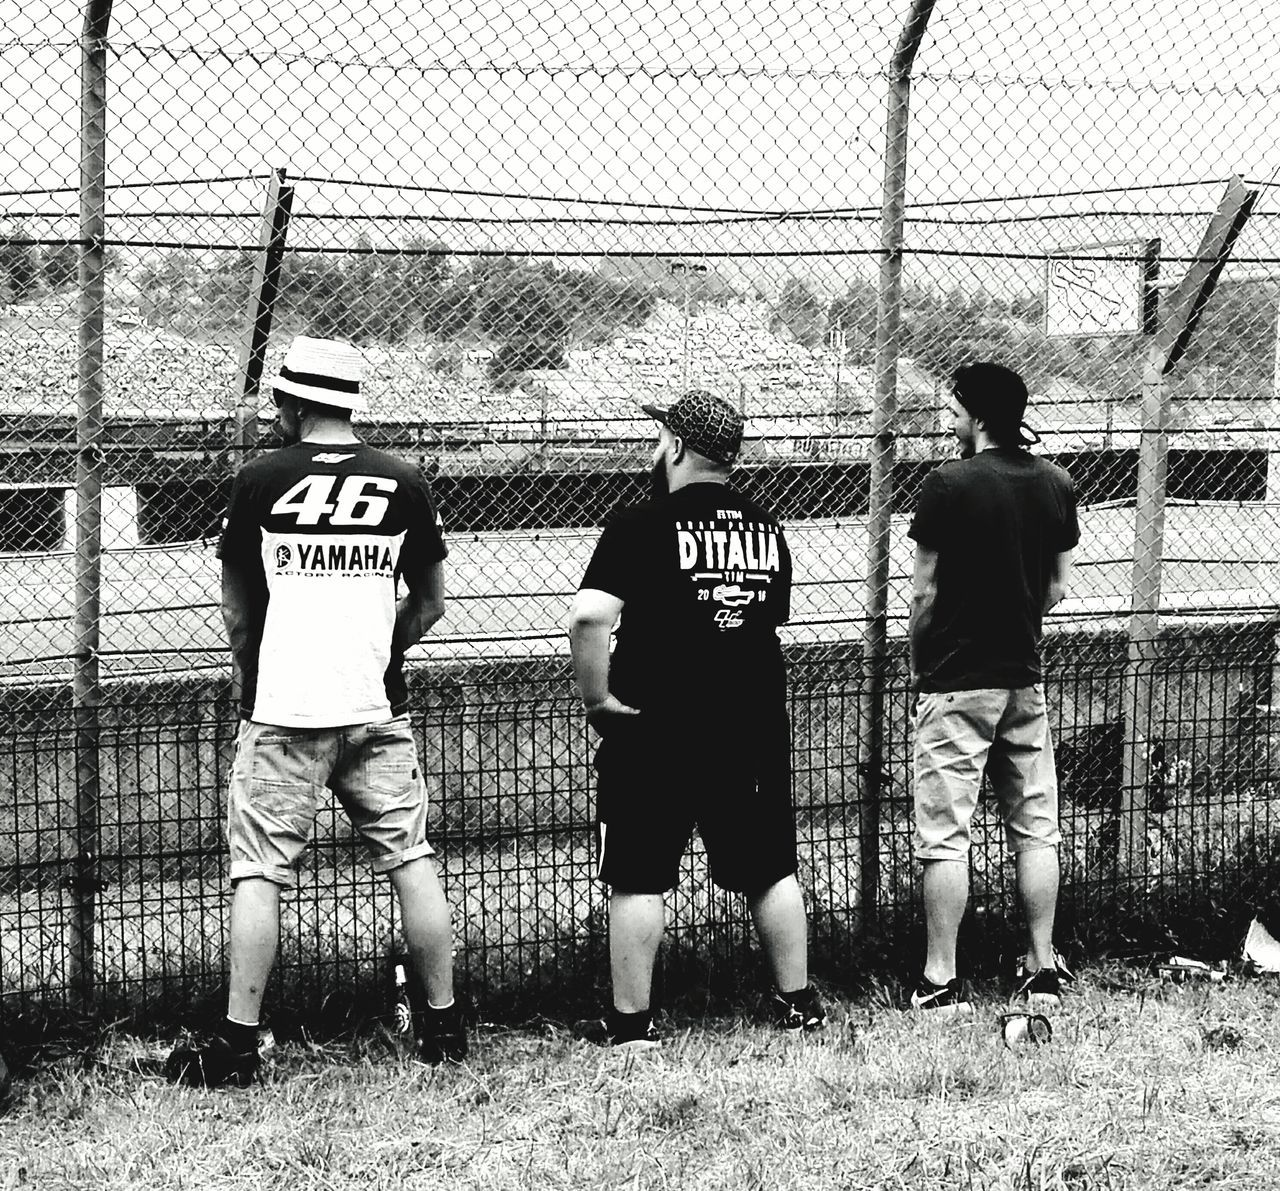 Mugello 2017 Real People Day Togetherness Outdoors Standing Stolen Shot Stolen Moments ValentinoRossi VR46 Enjoying Life Gp Mugello Motorcycle Motorcycle Racing Mugello Circuit Black & White Photography Capture The Moment Ops! What Are They Doing? Toilet Time🚽 Gran Premio D'Italia